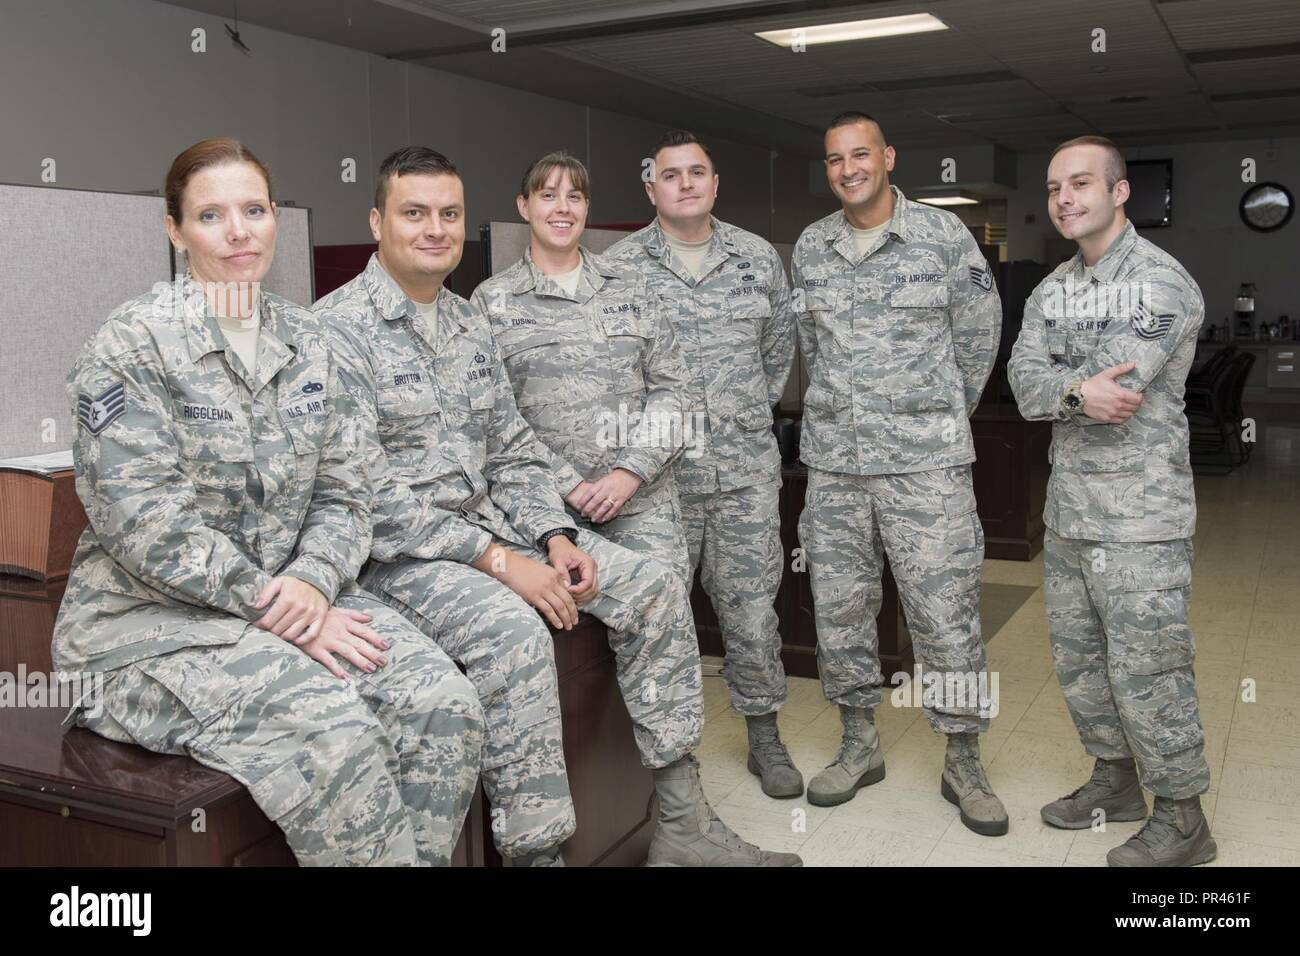 Air Force Staff Sgt Aaron Stock Photos & Air Force Staff Sgt